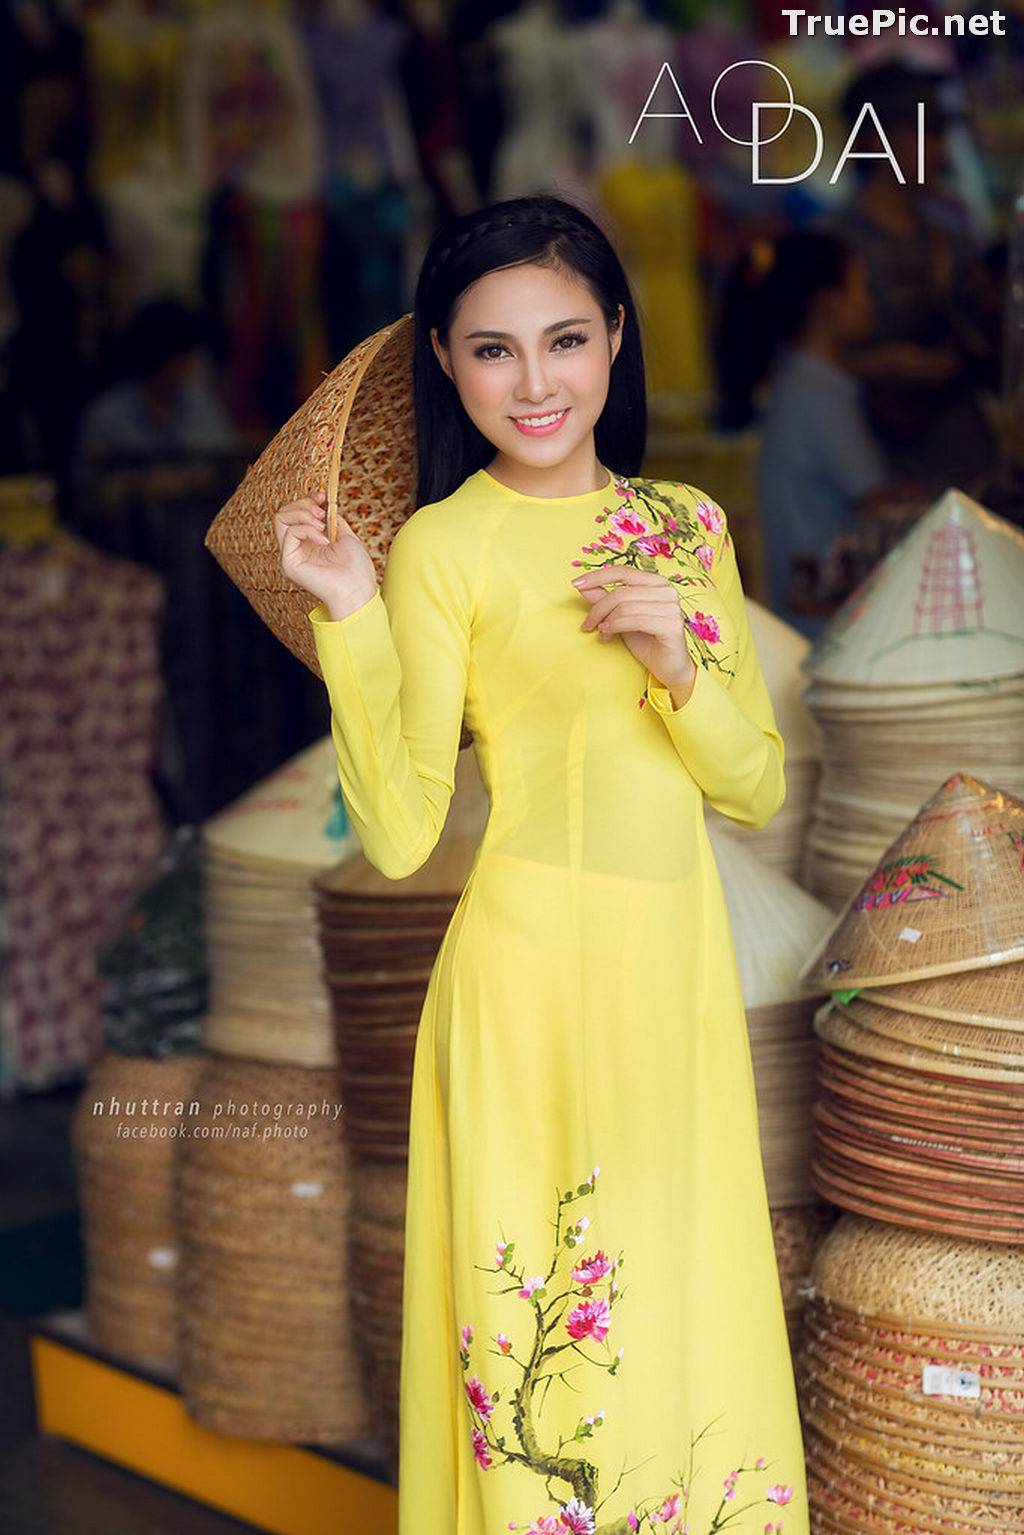 Image The Beauty of Vietnamese Girls with Traditional Dress (Ao Dai) #5 - TruePic.net - Picture-9